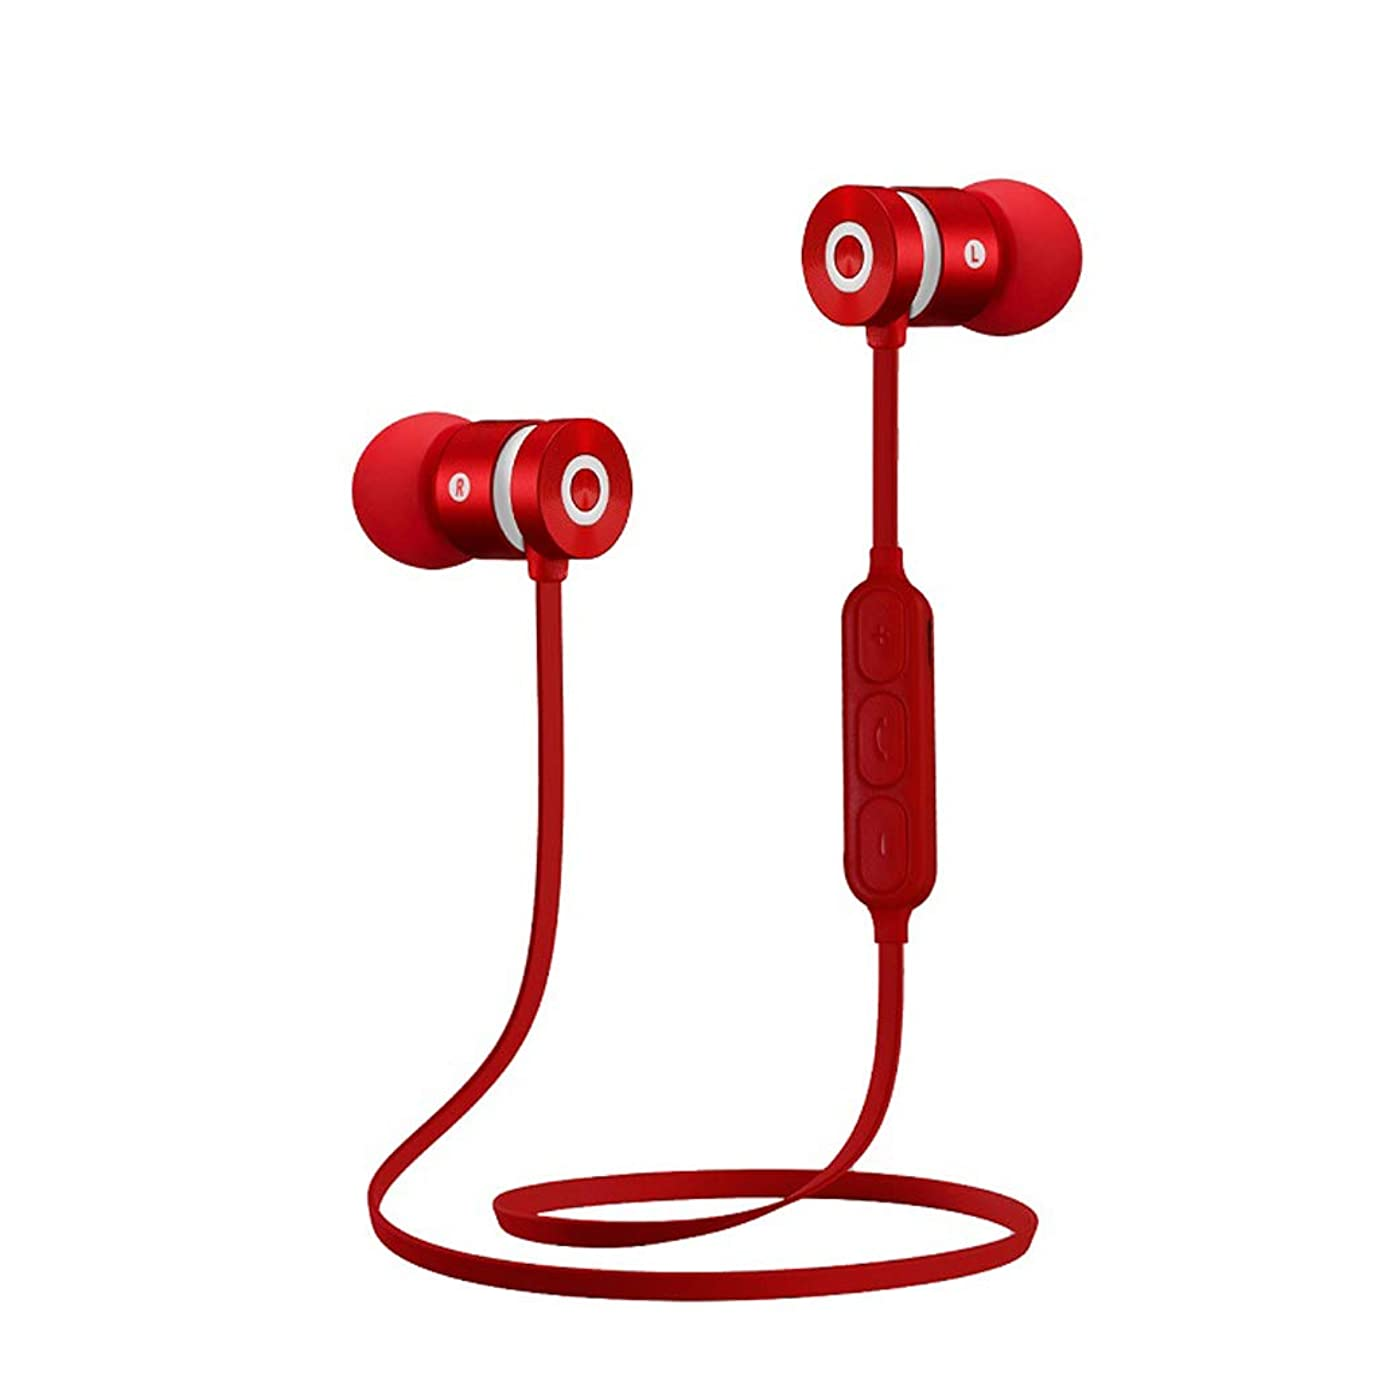 Bluetooth Headphones Waterproof Magnetic Wireless Earbuds Sport Wireless Sports Earphones Waterproof HD Stereo Sweatproof Earbuds for Gym Running Workout Noise Cancelling Headsets (Red)